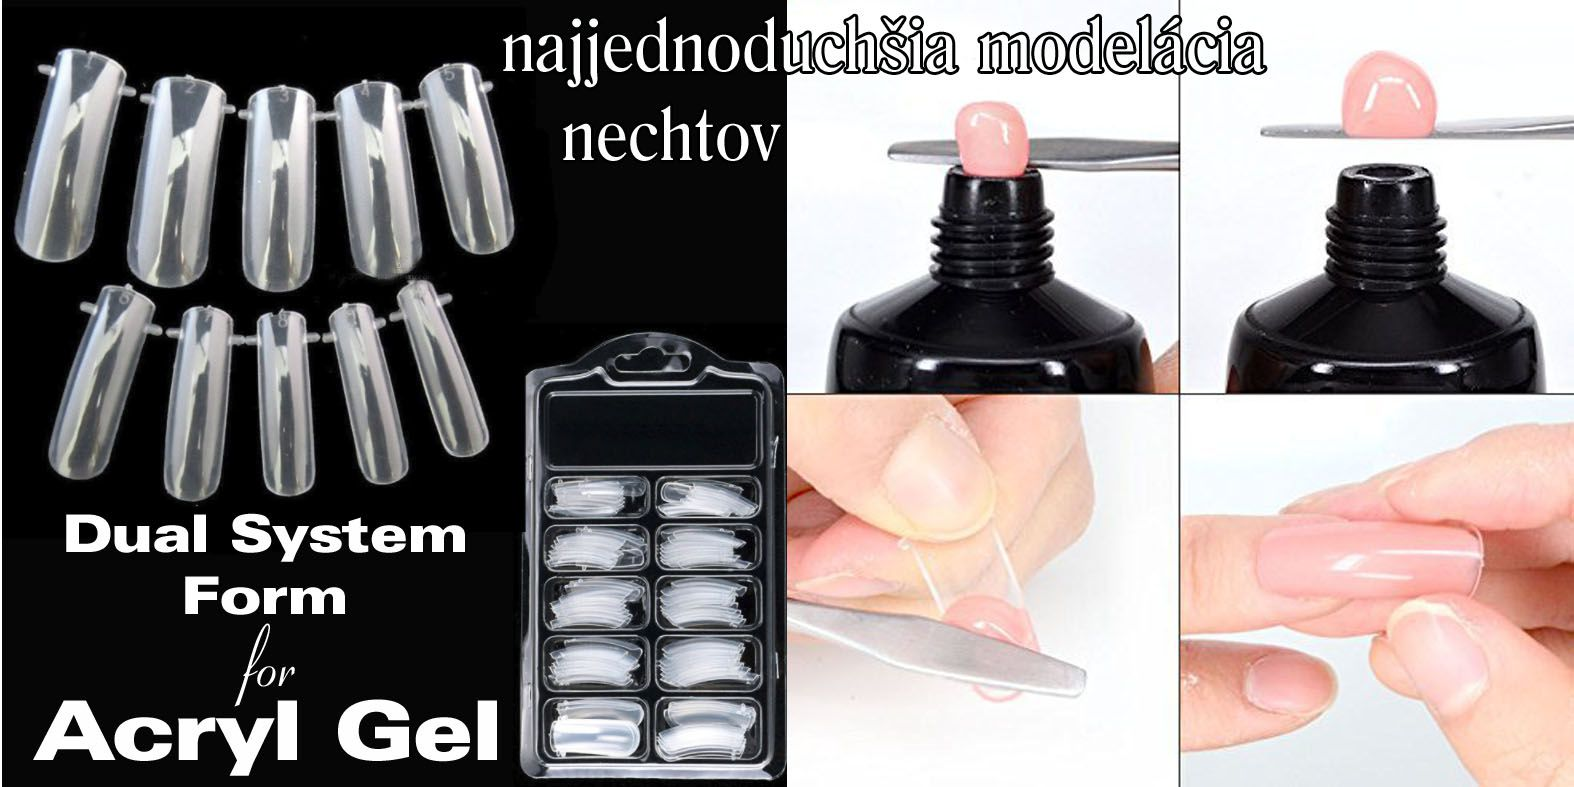 Dual System Form for Acryl Gel